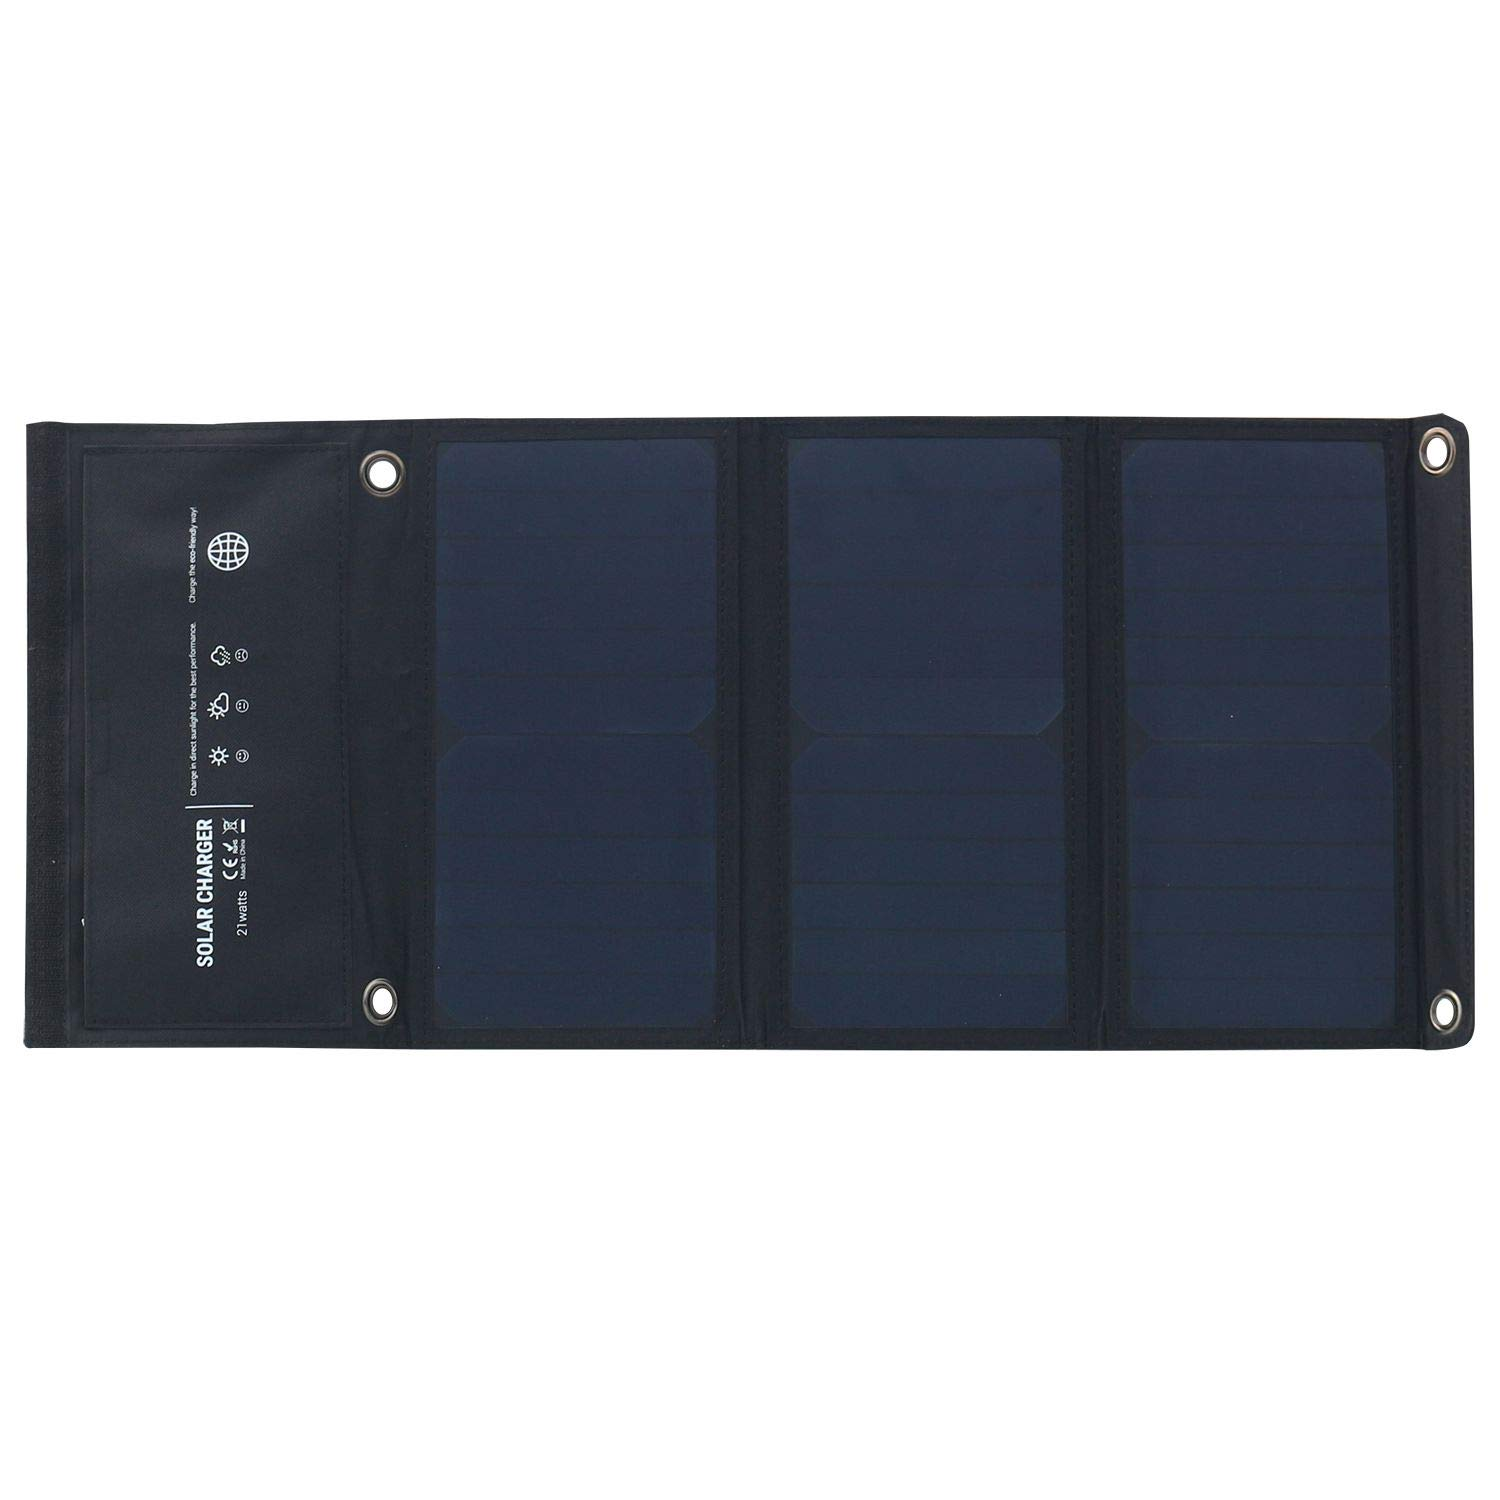 SODIAL 5V 21W Waterproof Solar Powered Charger Foldable Outdoor Solar Charger Dual USB Ports for iPhone 8/X/7/6s, iPad Pro/Air 2/Mini, Galaxy S8/S7/S6, LG, Nexus and More